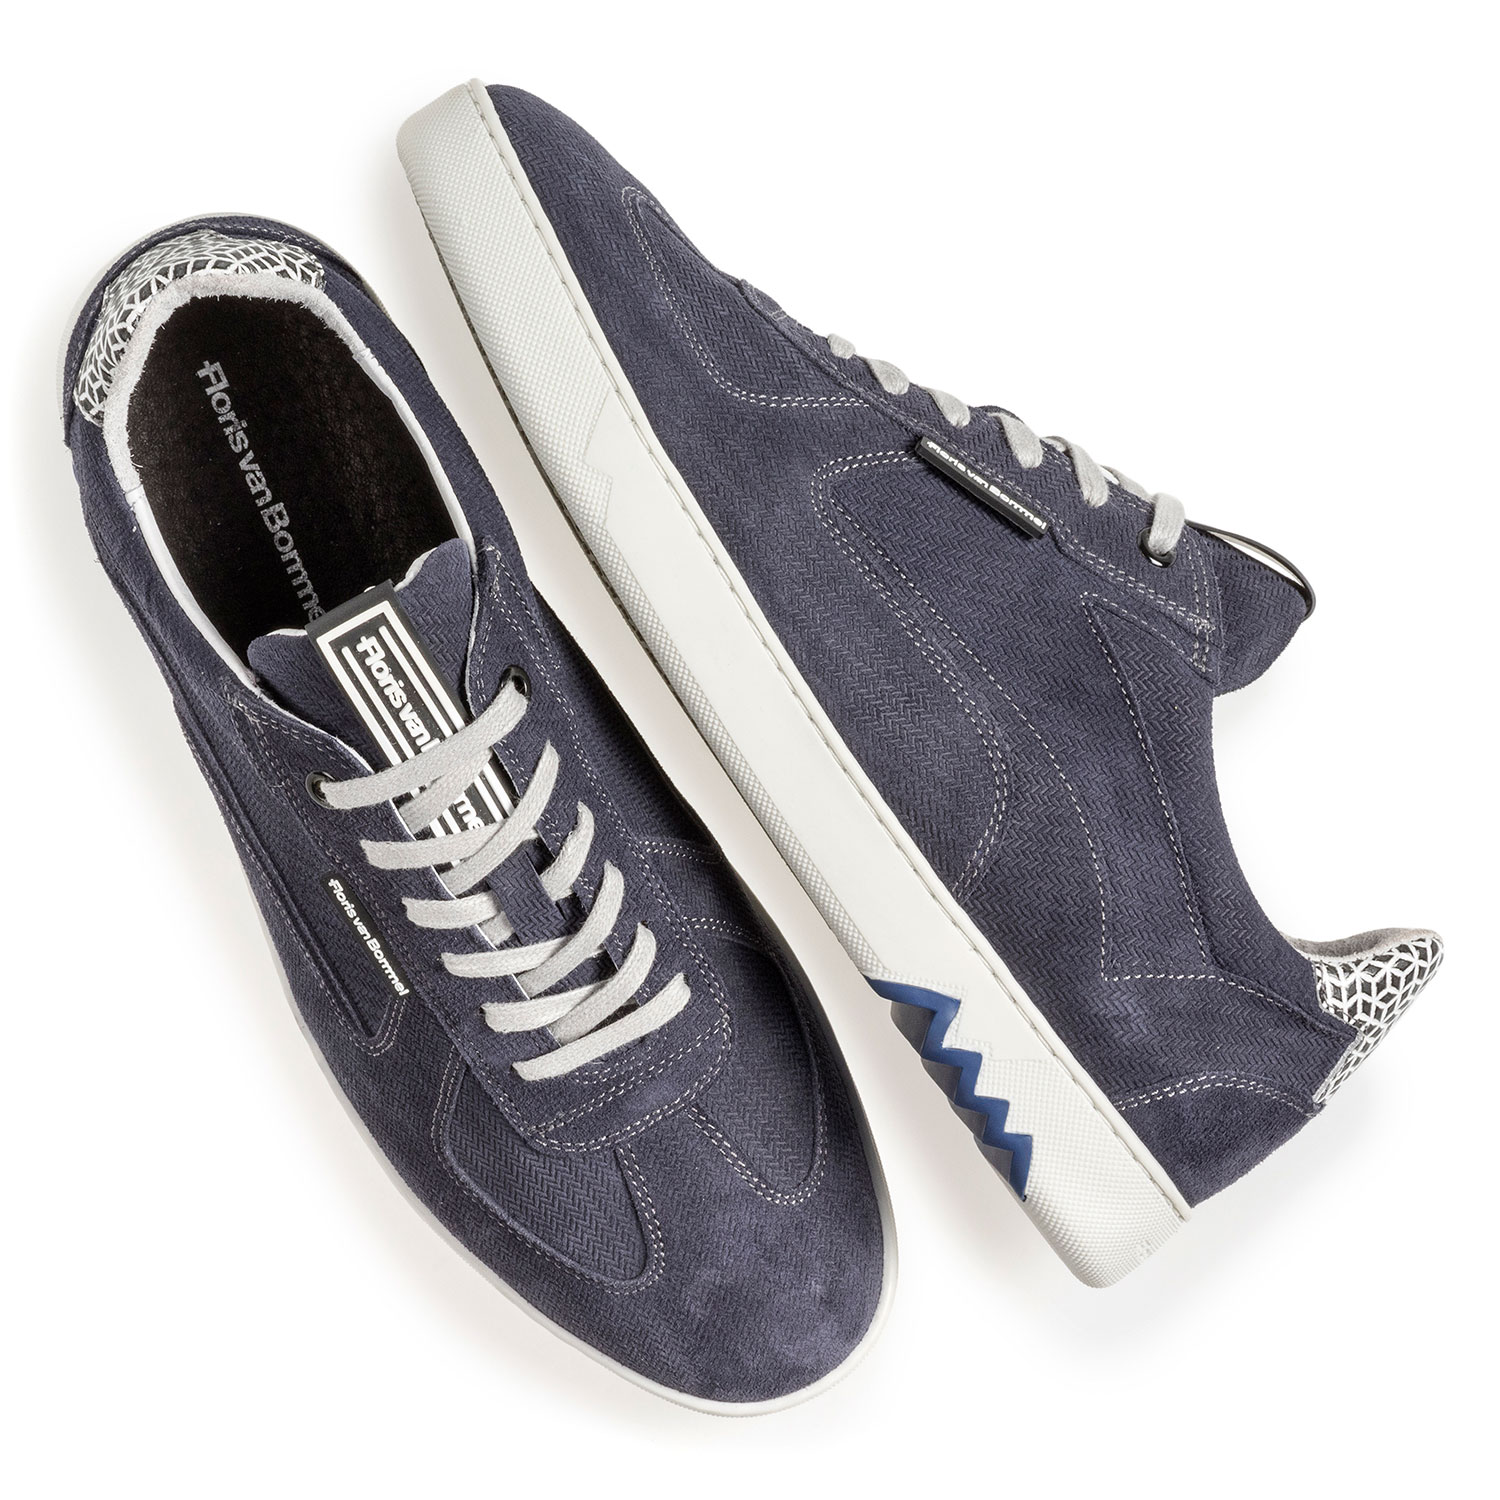 16342/22 - Blue suede leather sneaker with print